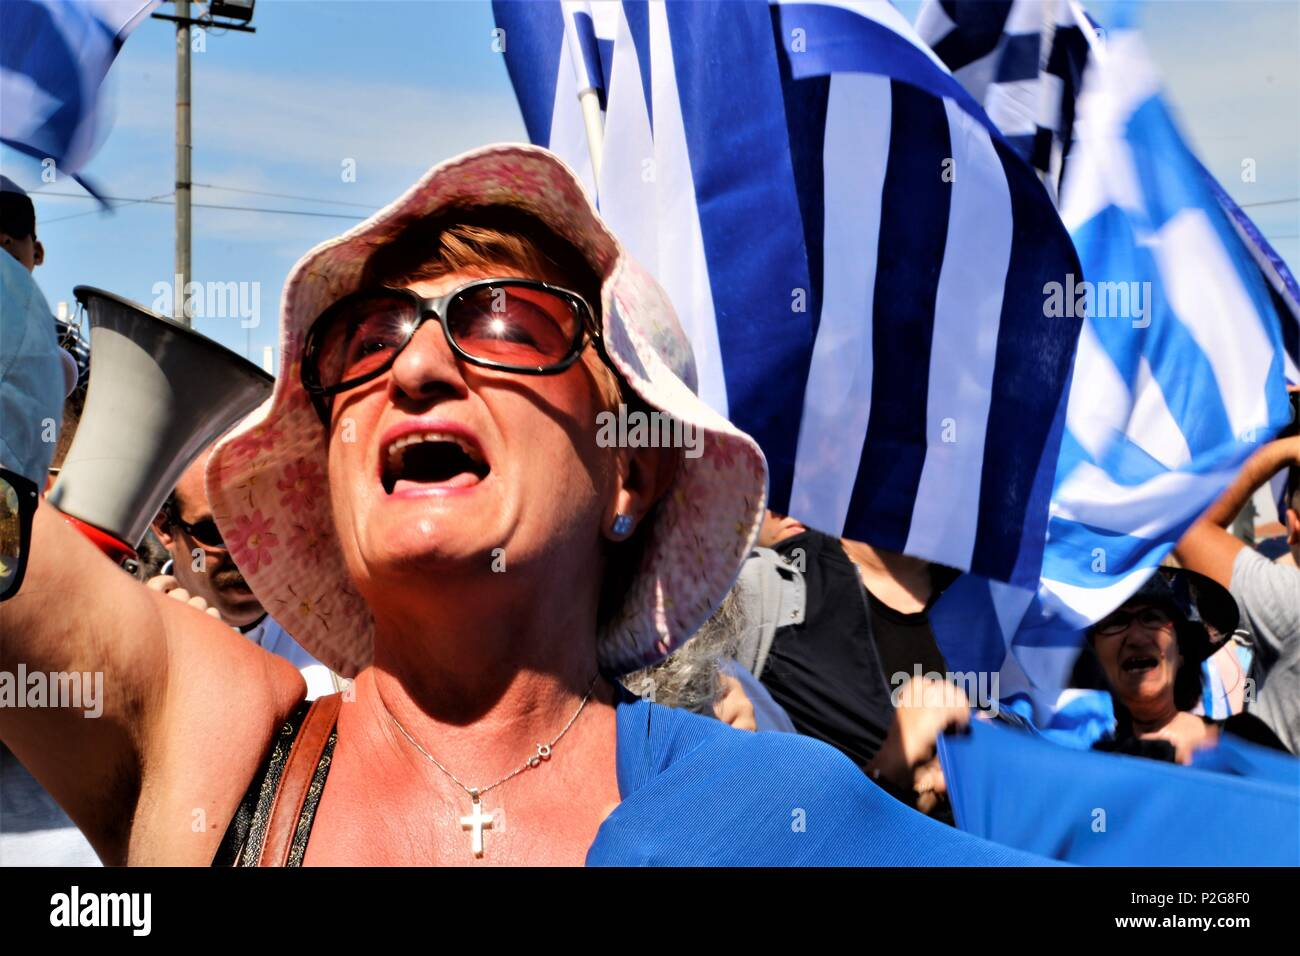 Athens Greece 15th June 2018 A Woman Is Seen Cheering During The